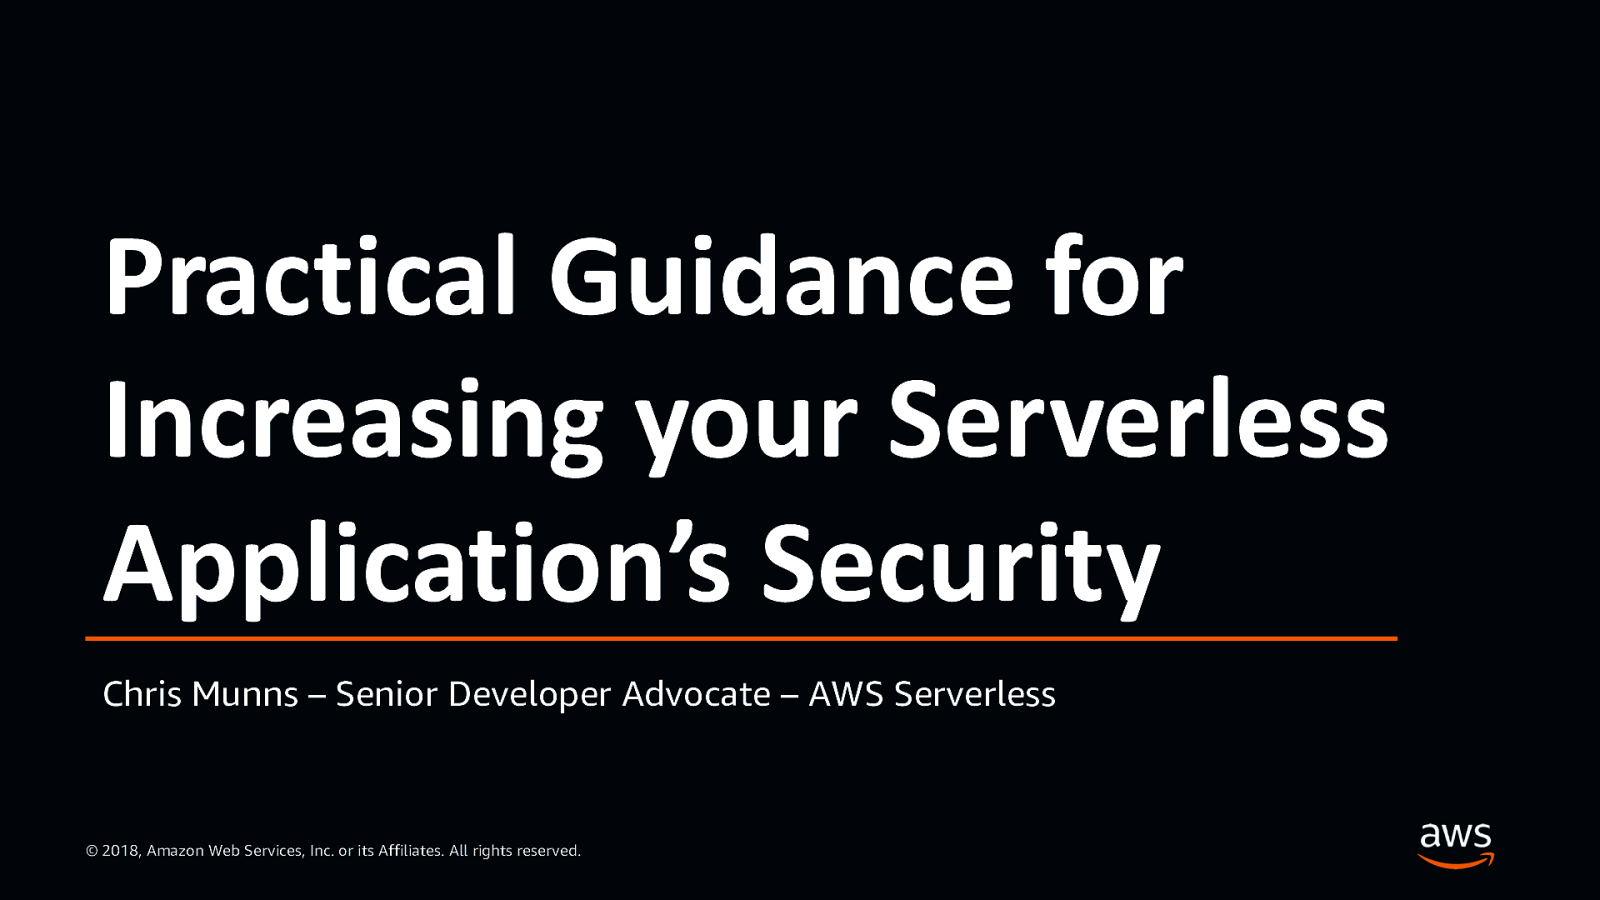 Practical Guidance for Increasing your Serverless Application's Security